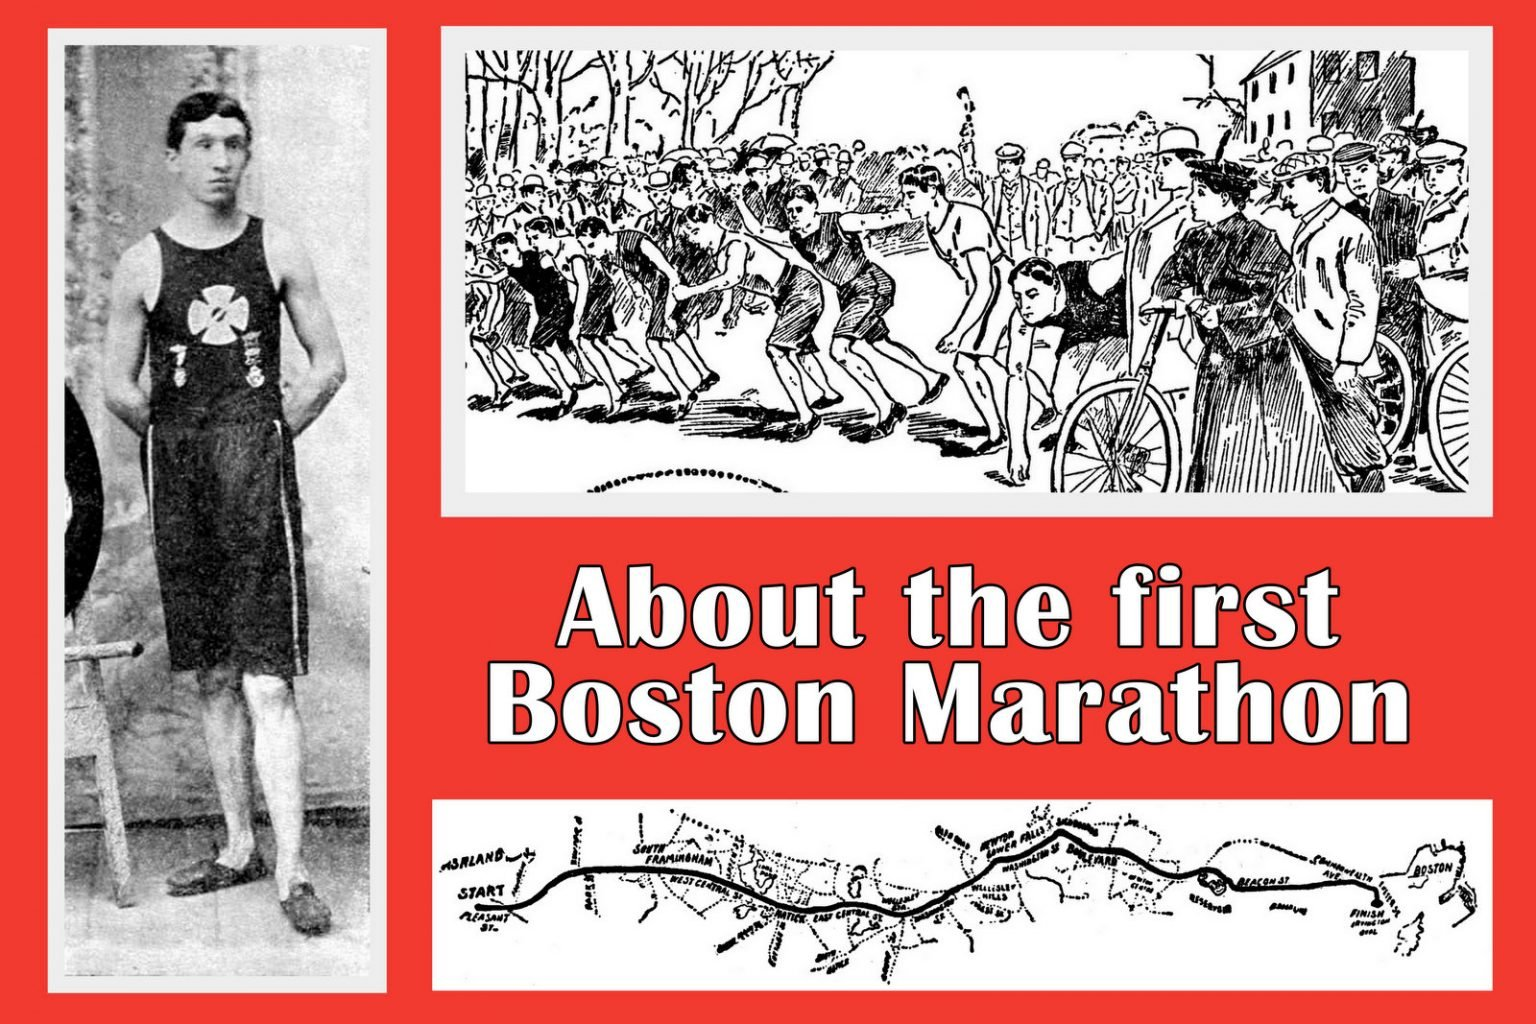 What the first Boston Marathon was like back in 1897